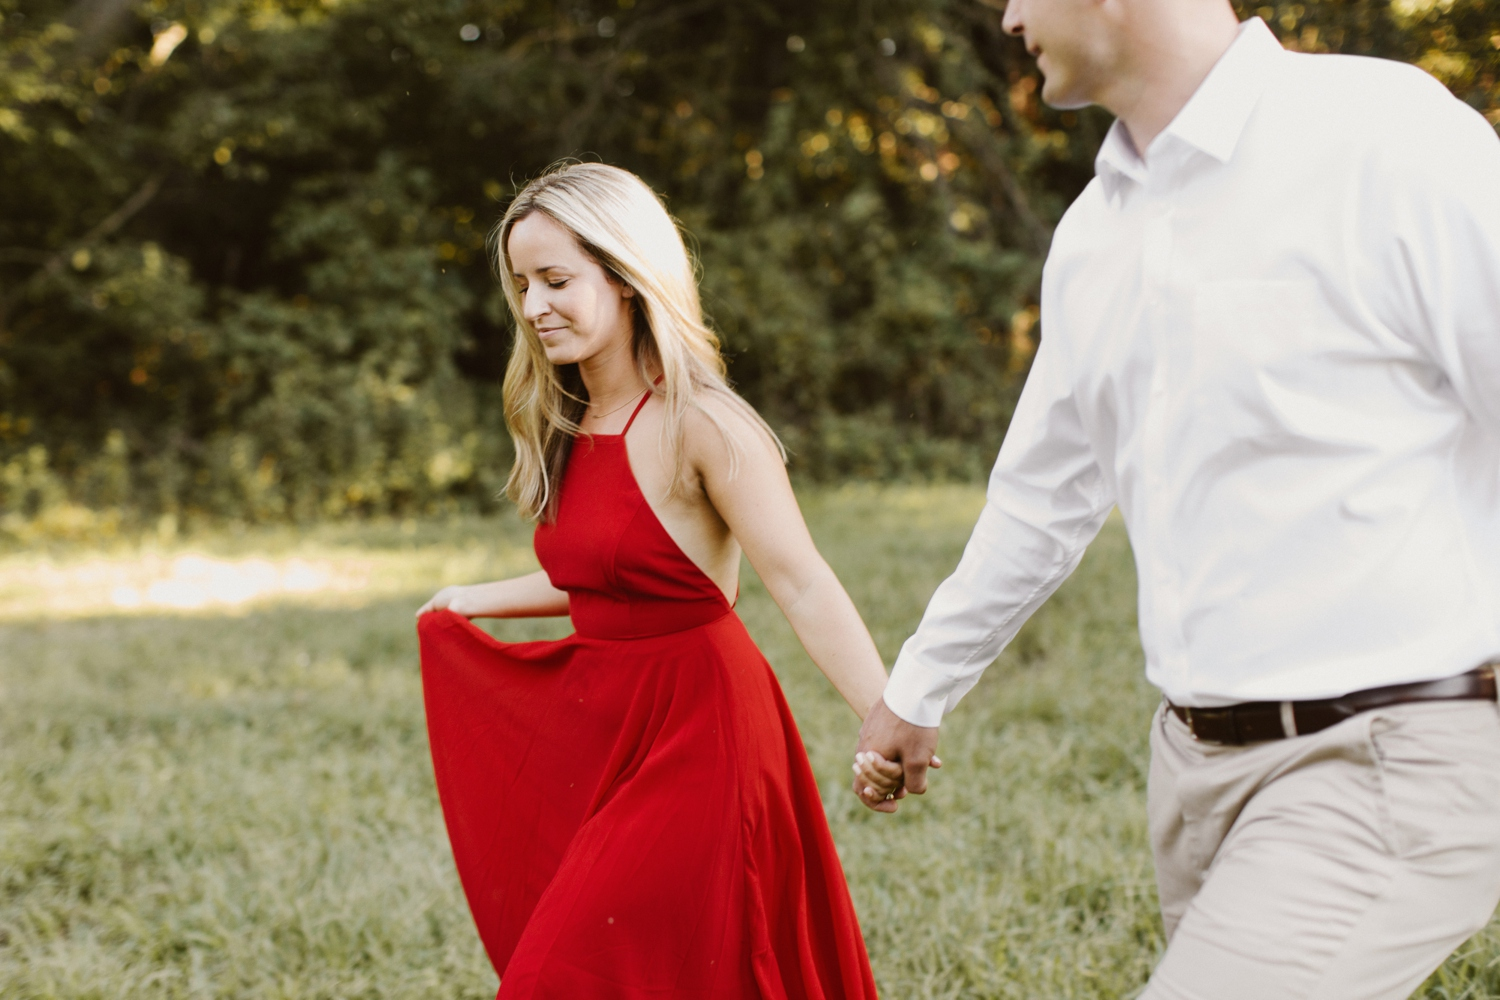 baltimore-maryland-forest-sunset-engagement-session-red-dress-annapolis-kate-ann-photography-photo_0114